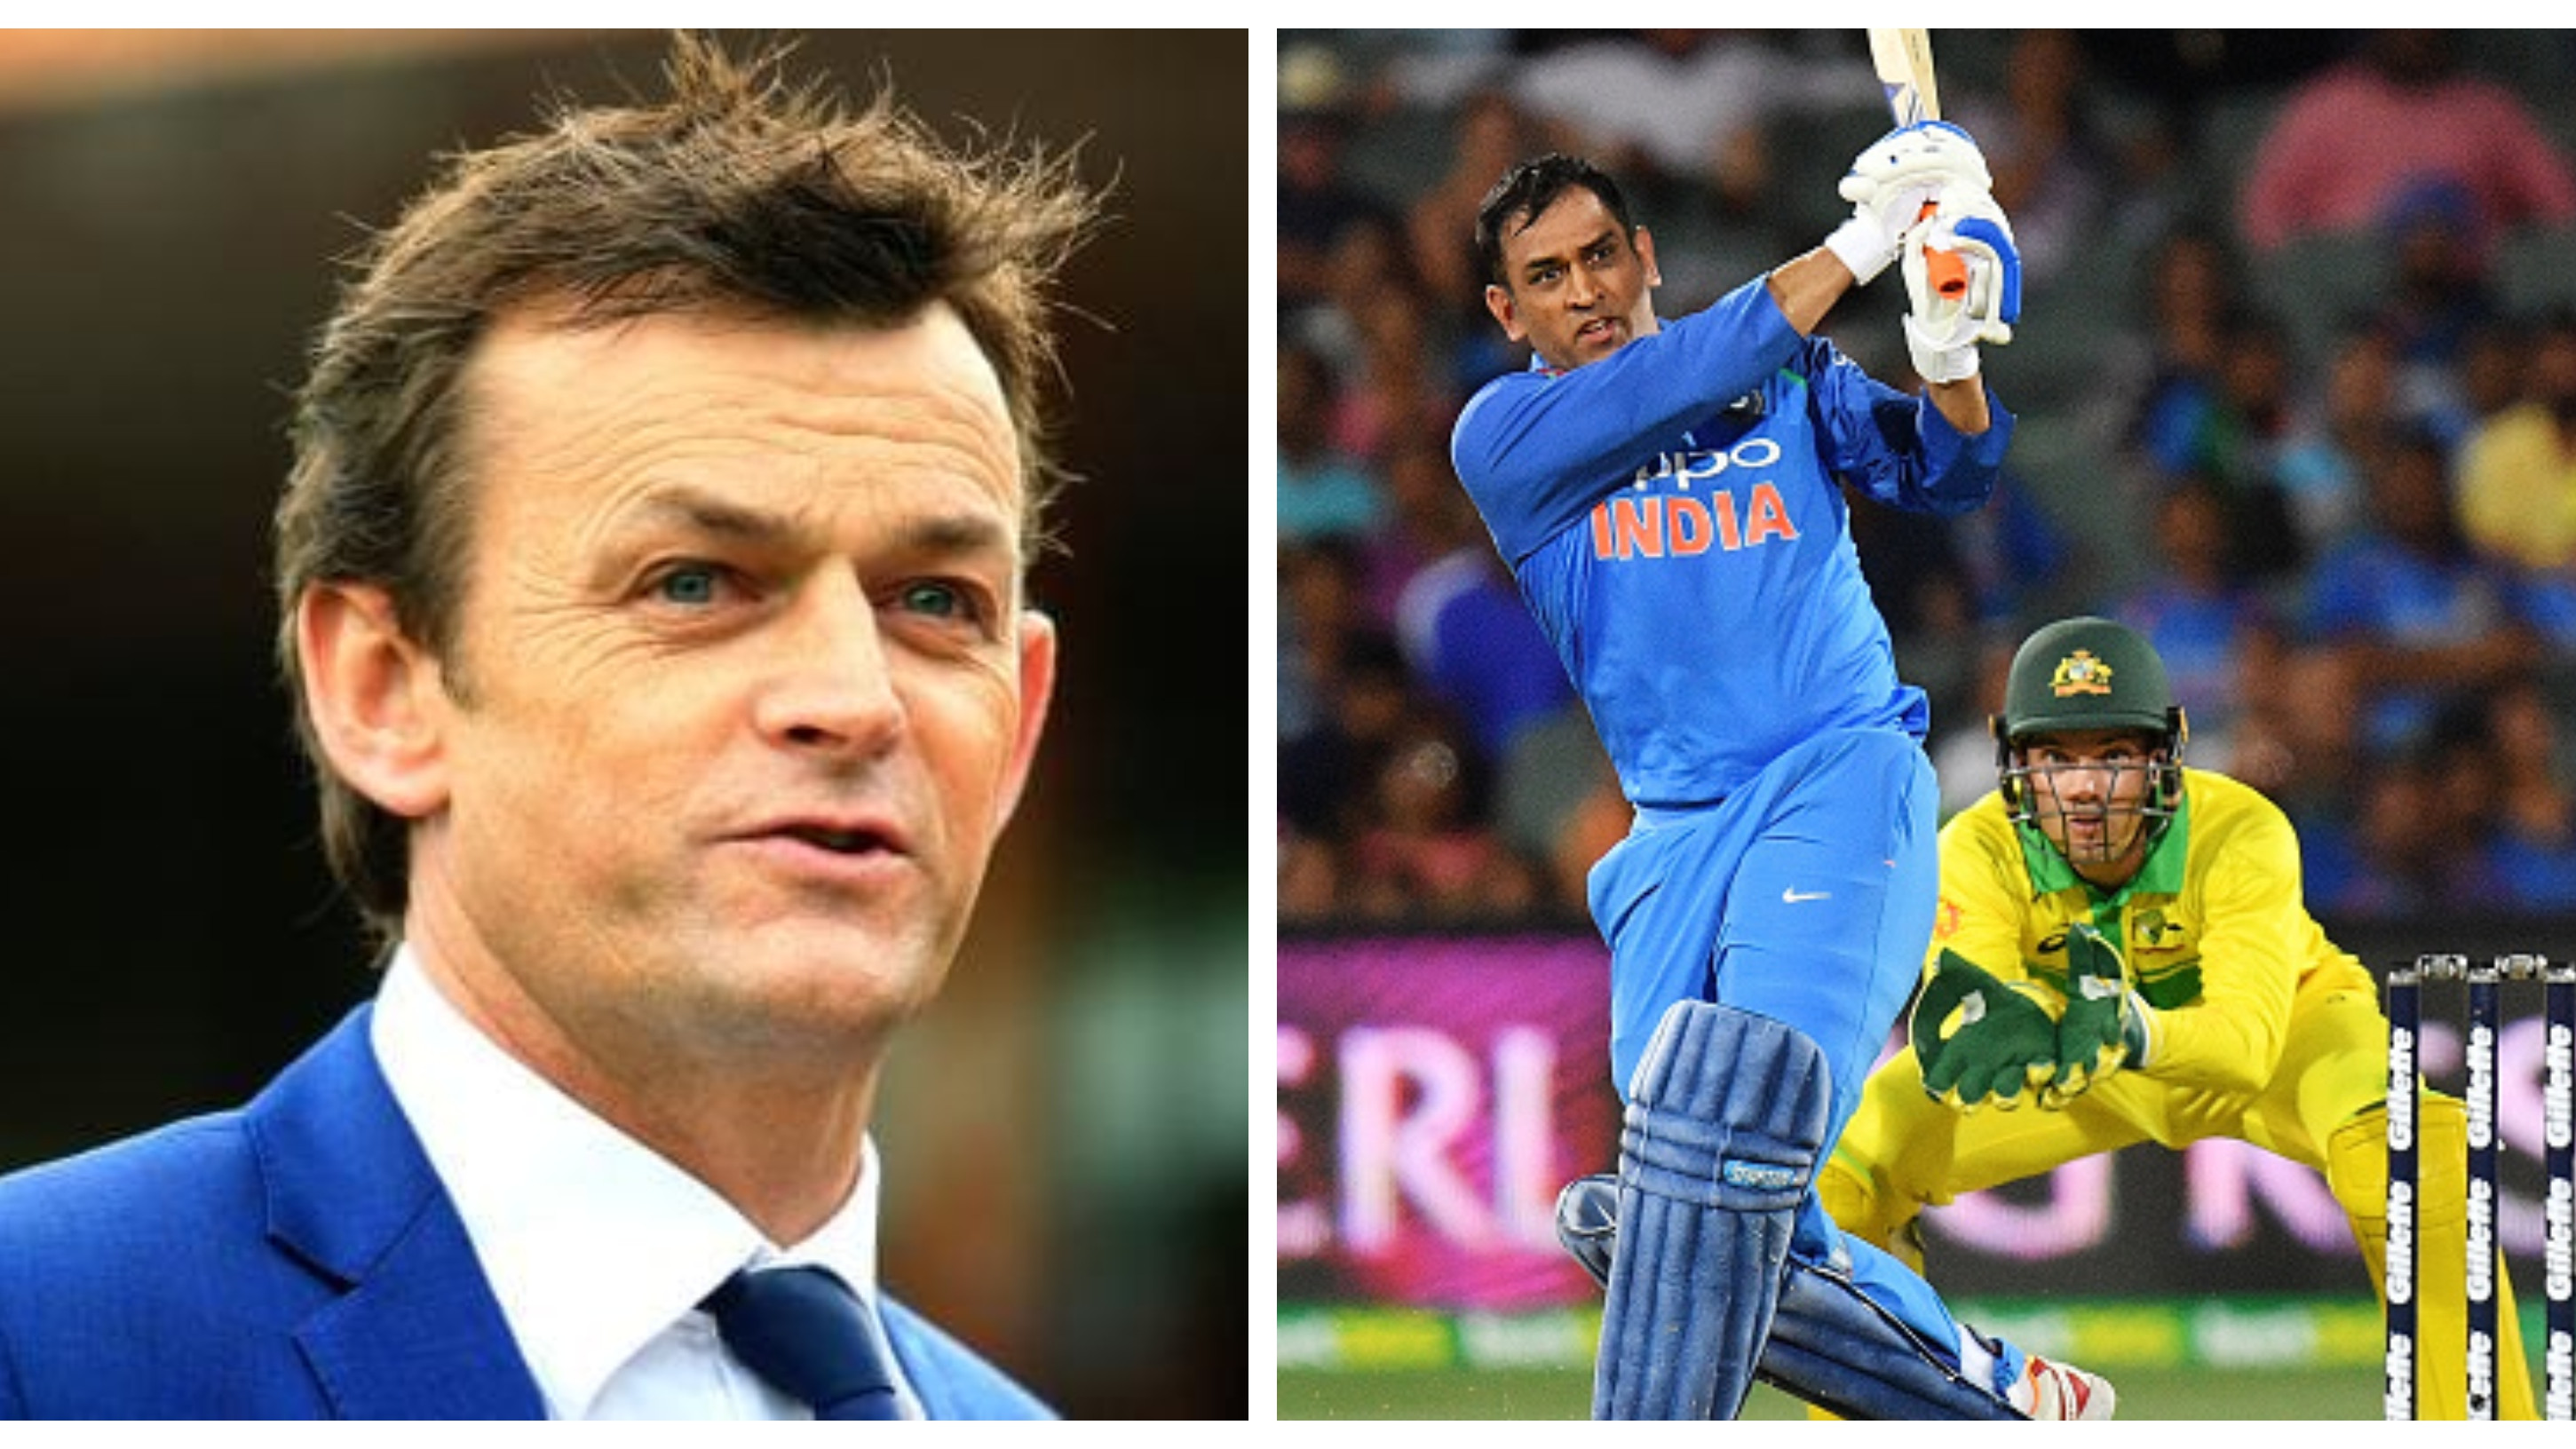 AUS v IND 2018-19: Gilchrist settles debate surrounding MS Dhoni's short run during the Adelaide ODI